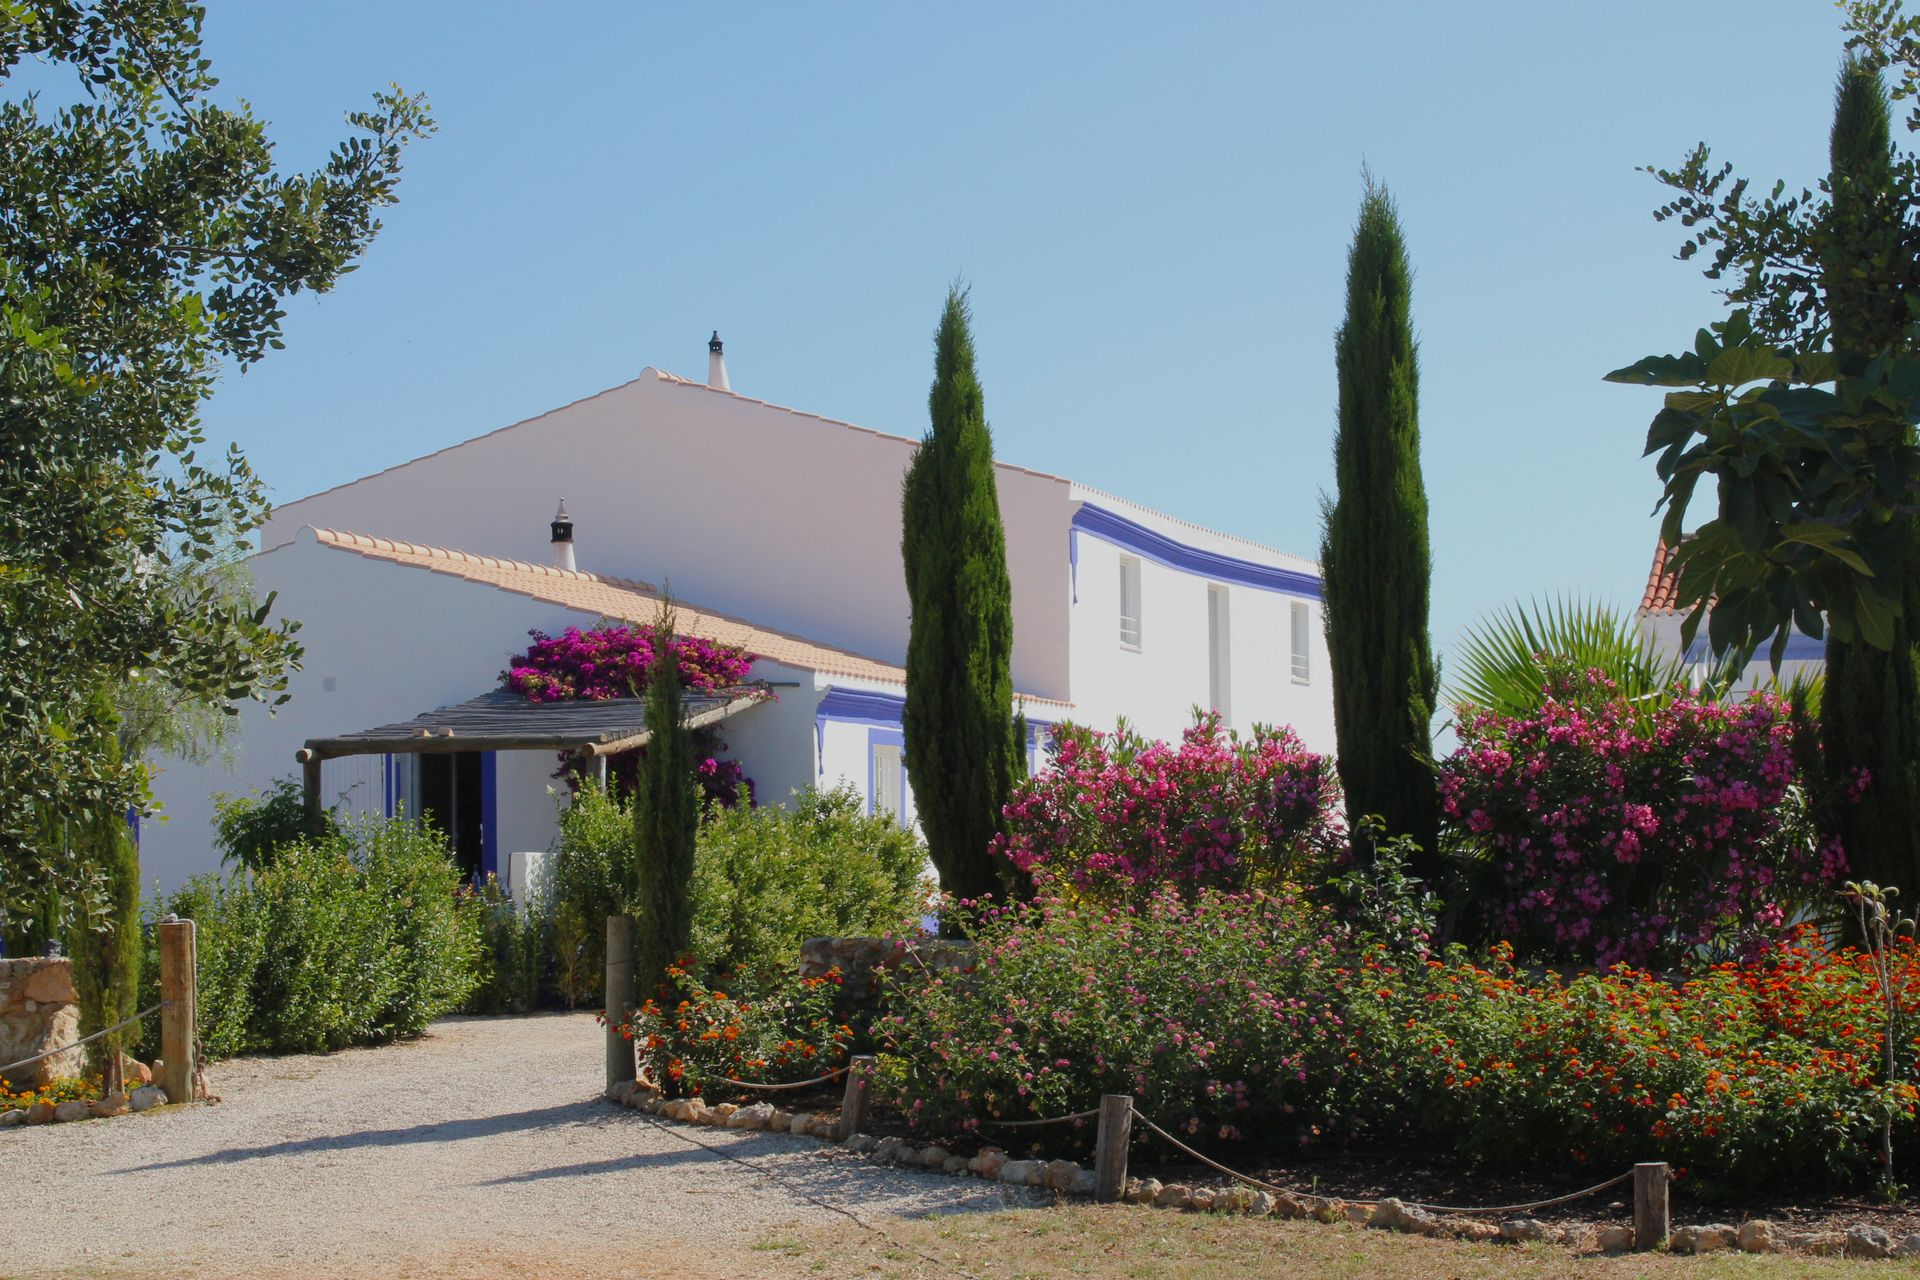 Unique <strong></strong> rural <br /> holiday place  <br /> <strong>of</strong> Ferragudo, Algarve